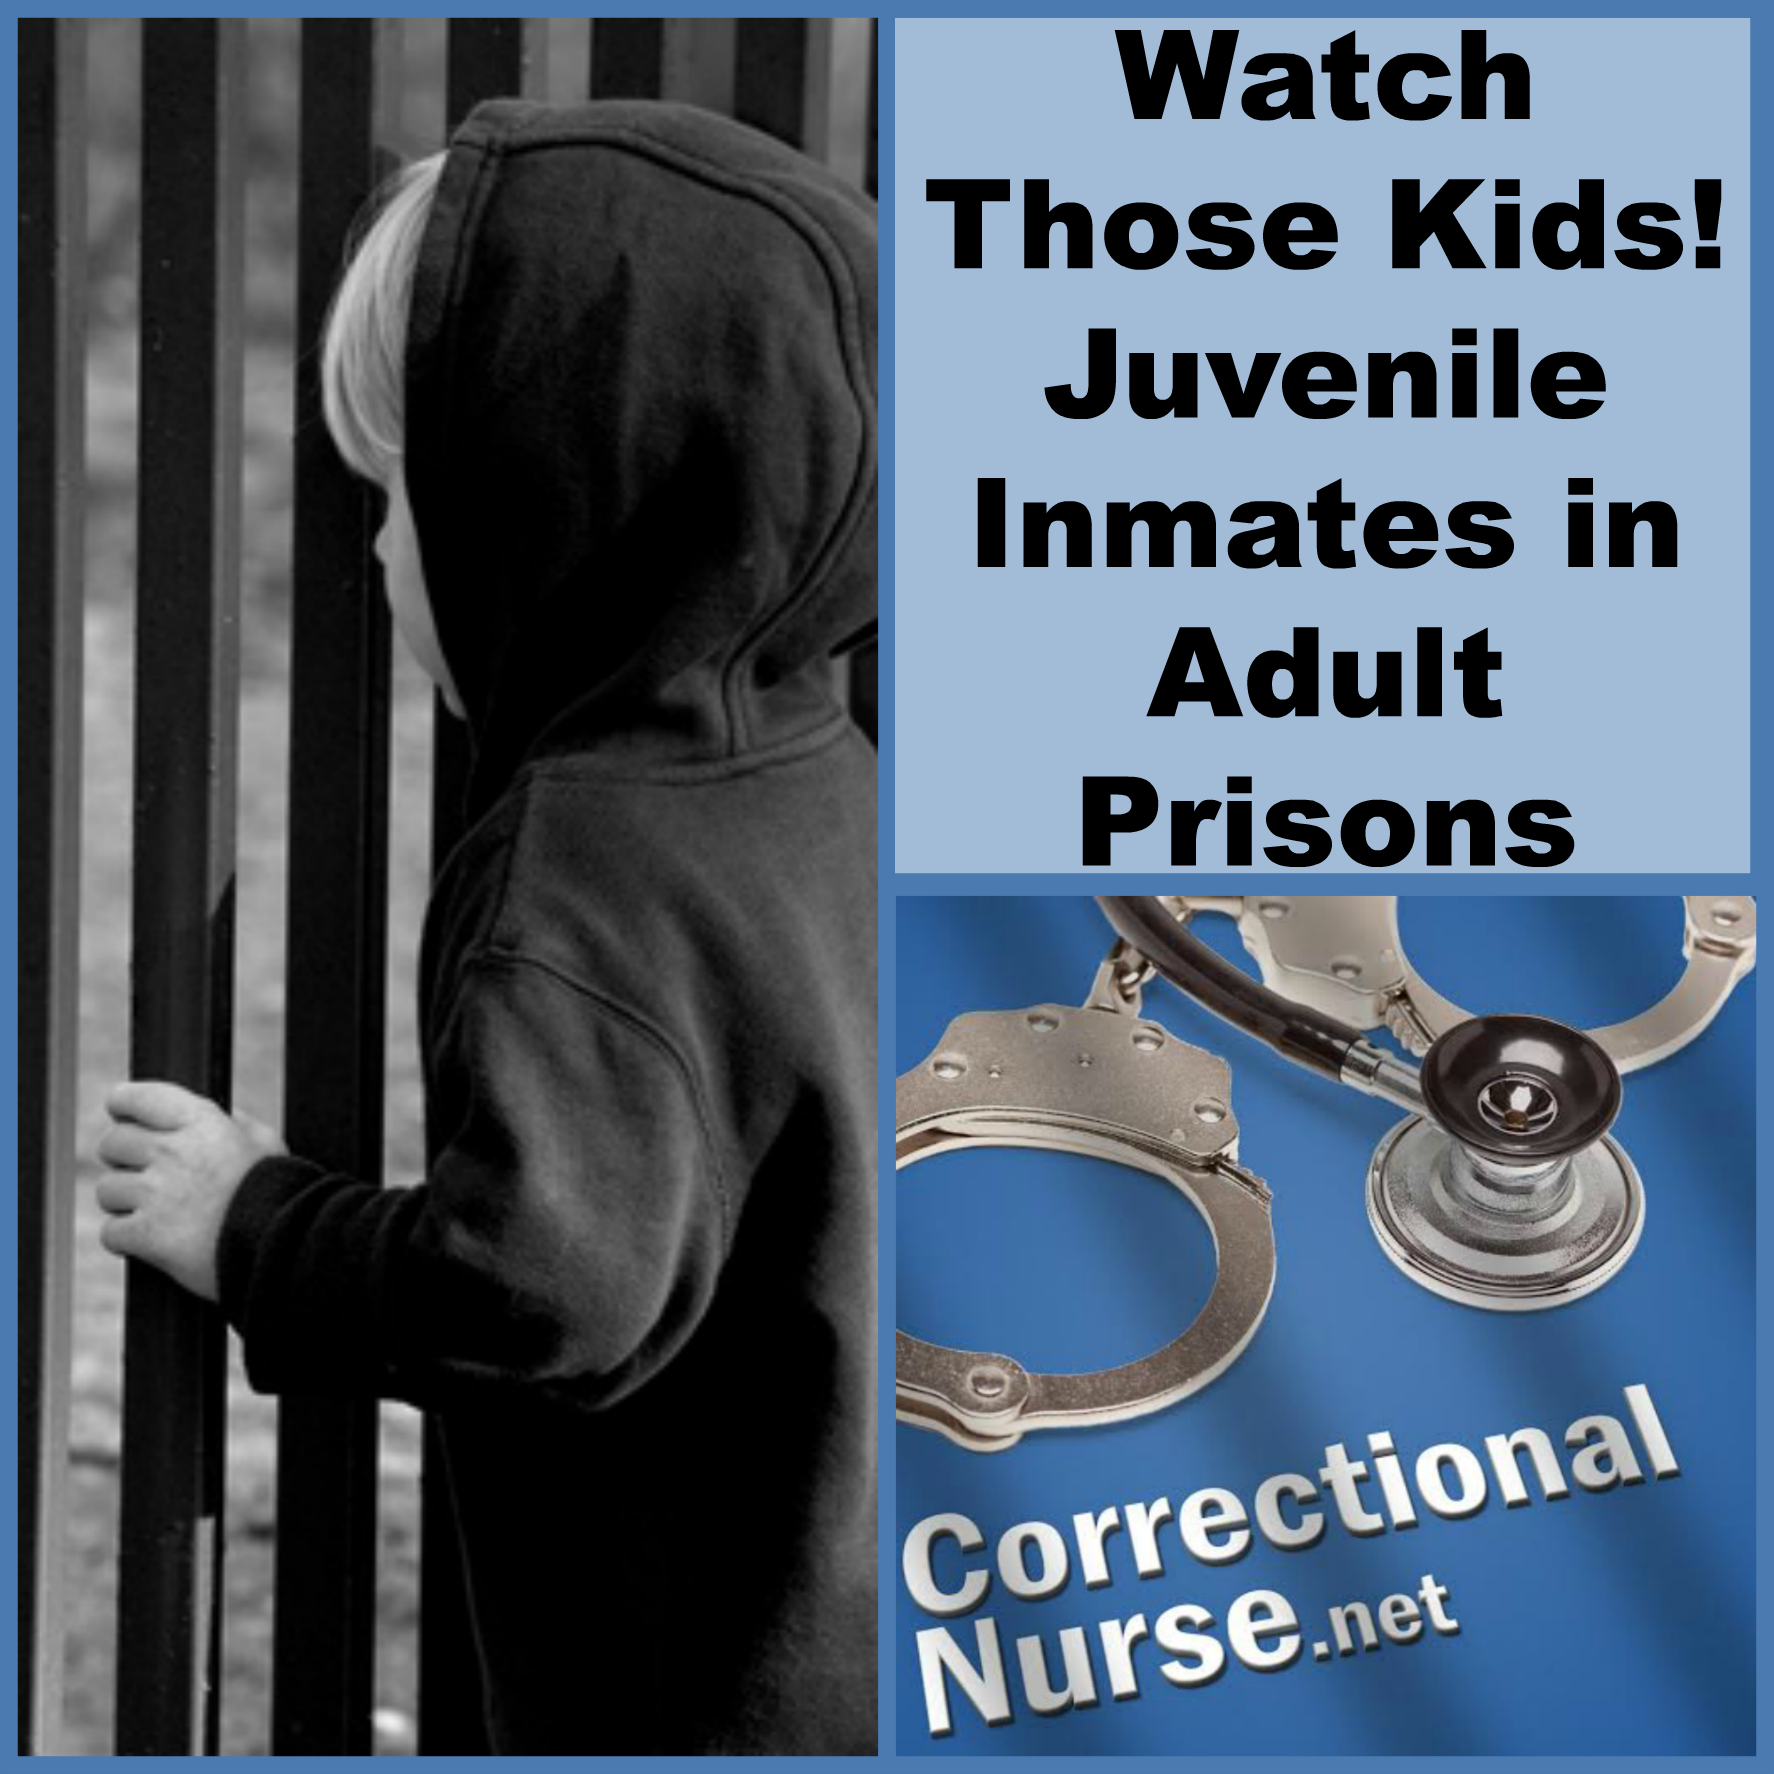 kids in adult prisons Incarcerated childhood: us kids prosecuted as adults - duration: 3:55 juveniles in adult prison: a disastrous idea - duration: 10:52.